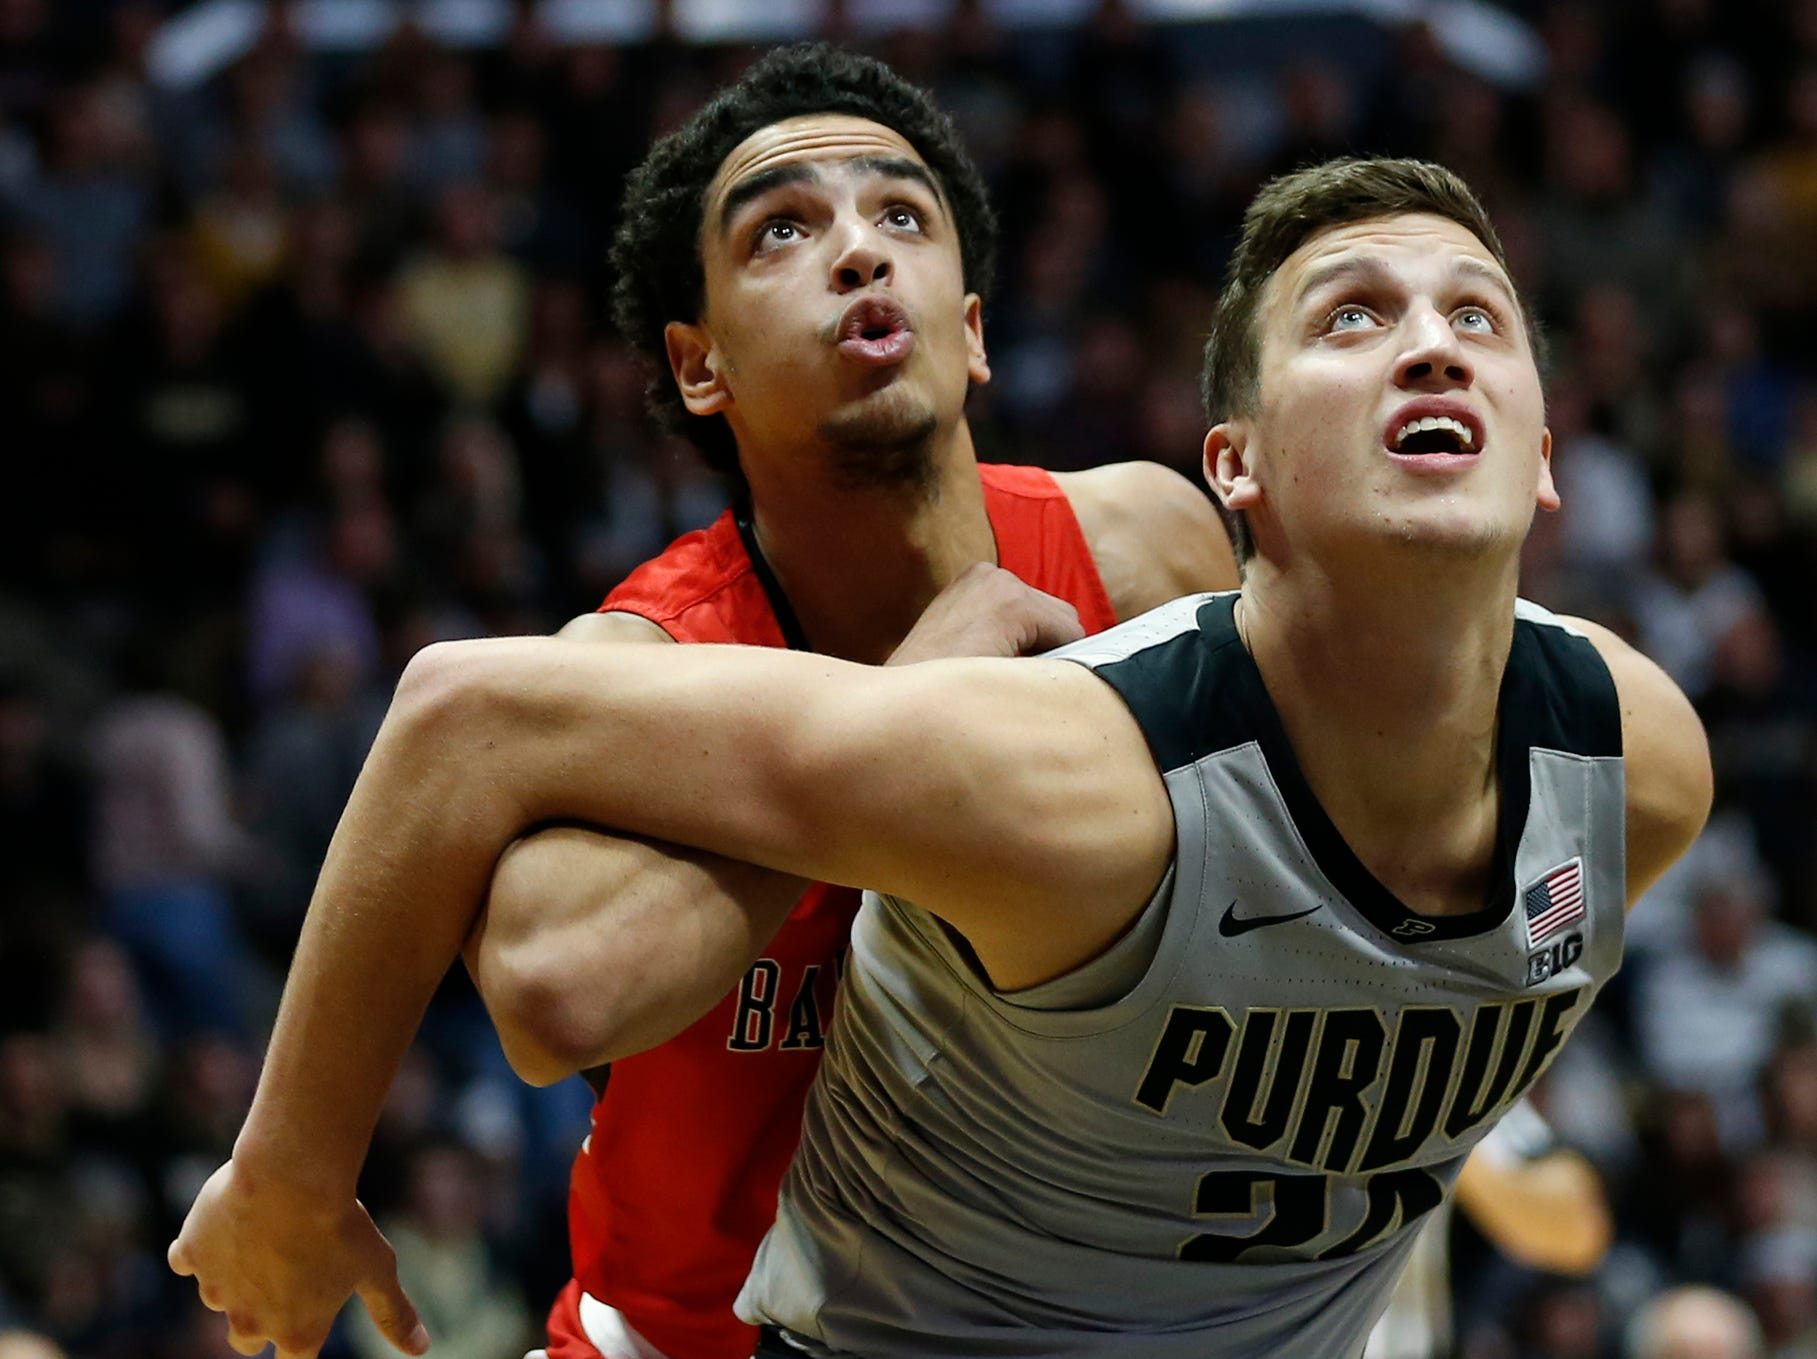 Grady Eifert of Purdue works to box out Zach Gunn of Ball State during a Boilermakers free throw attempt Saturday, November 10, 2018, at Mackey Arena. Purdue defeated Ball State 84-75.